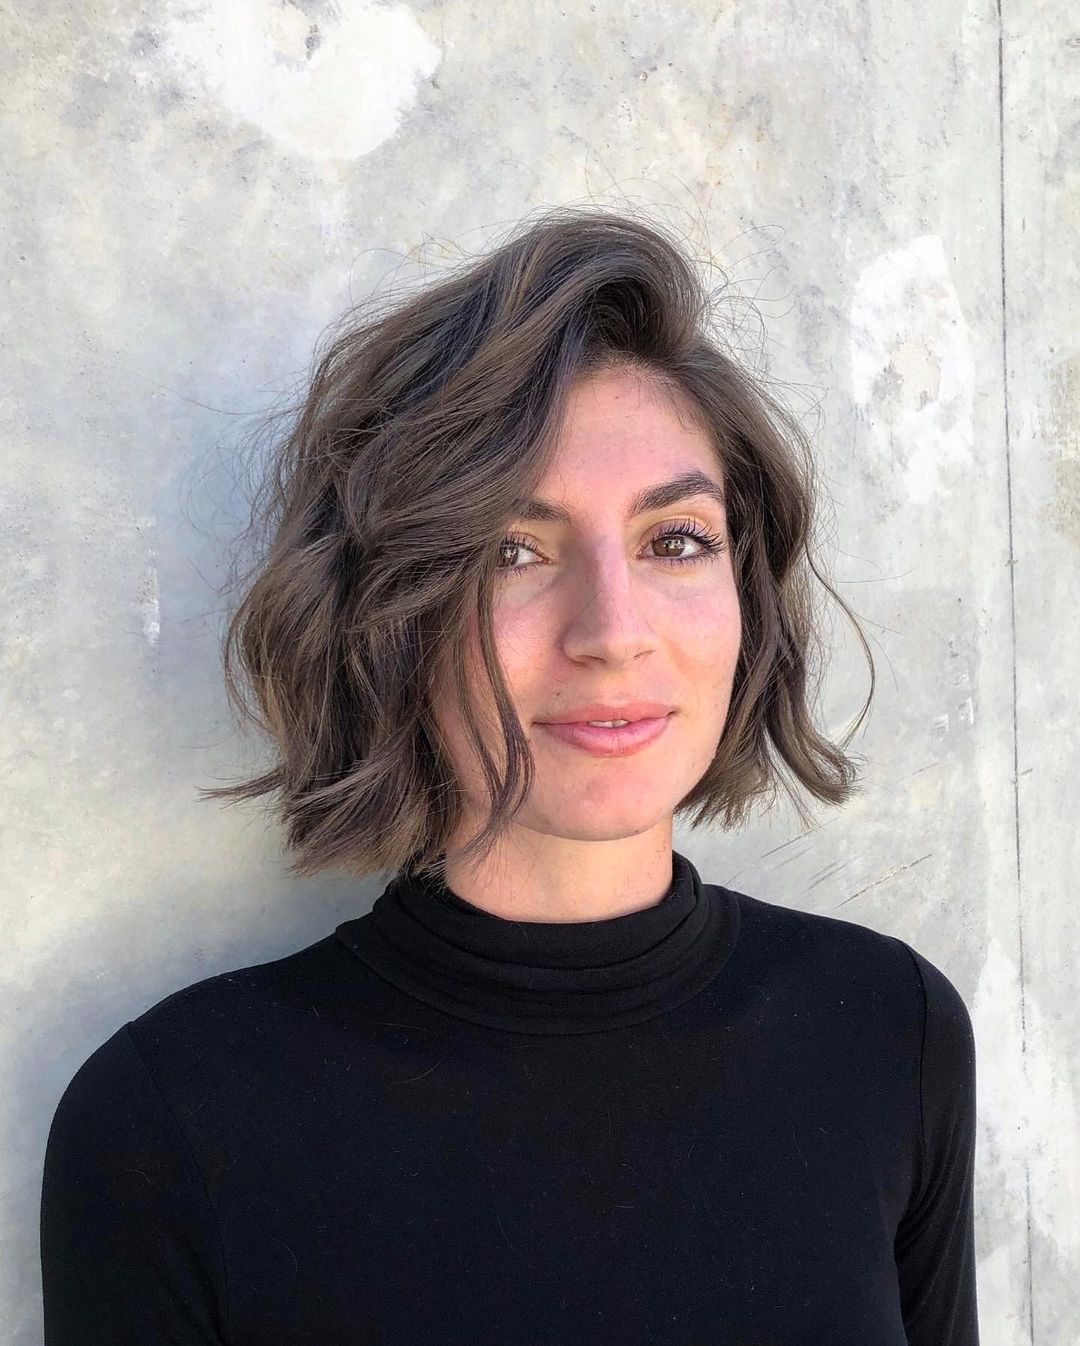 2 Best Short Hairstyles for Thin Hair to Look Fuller